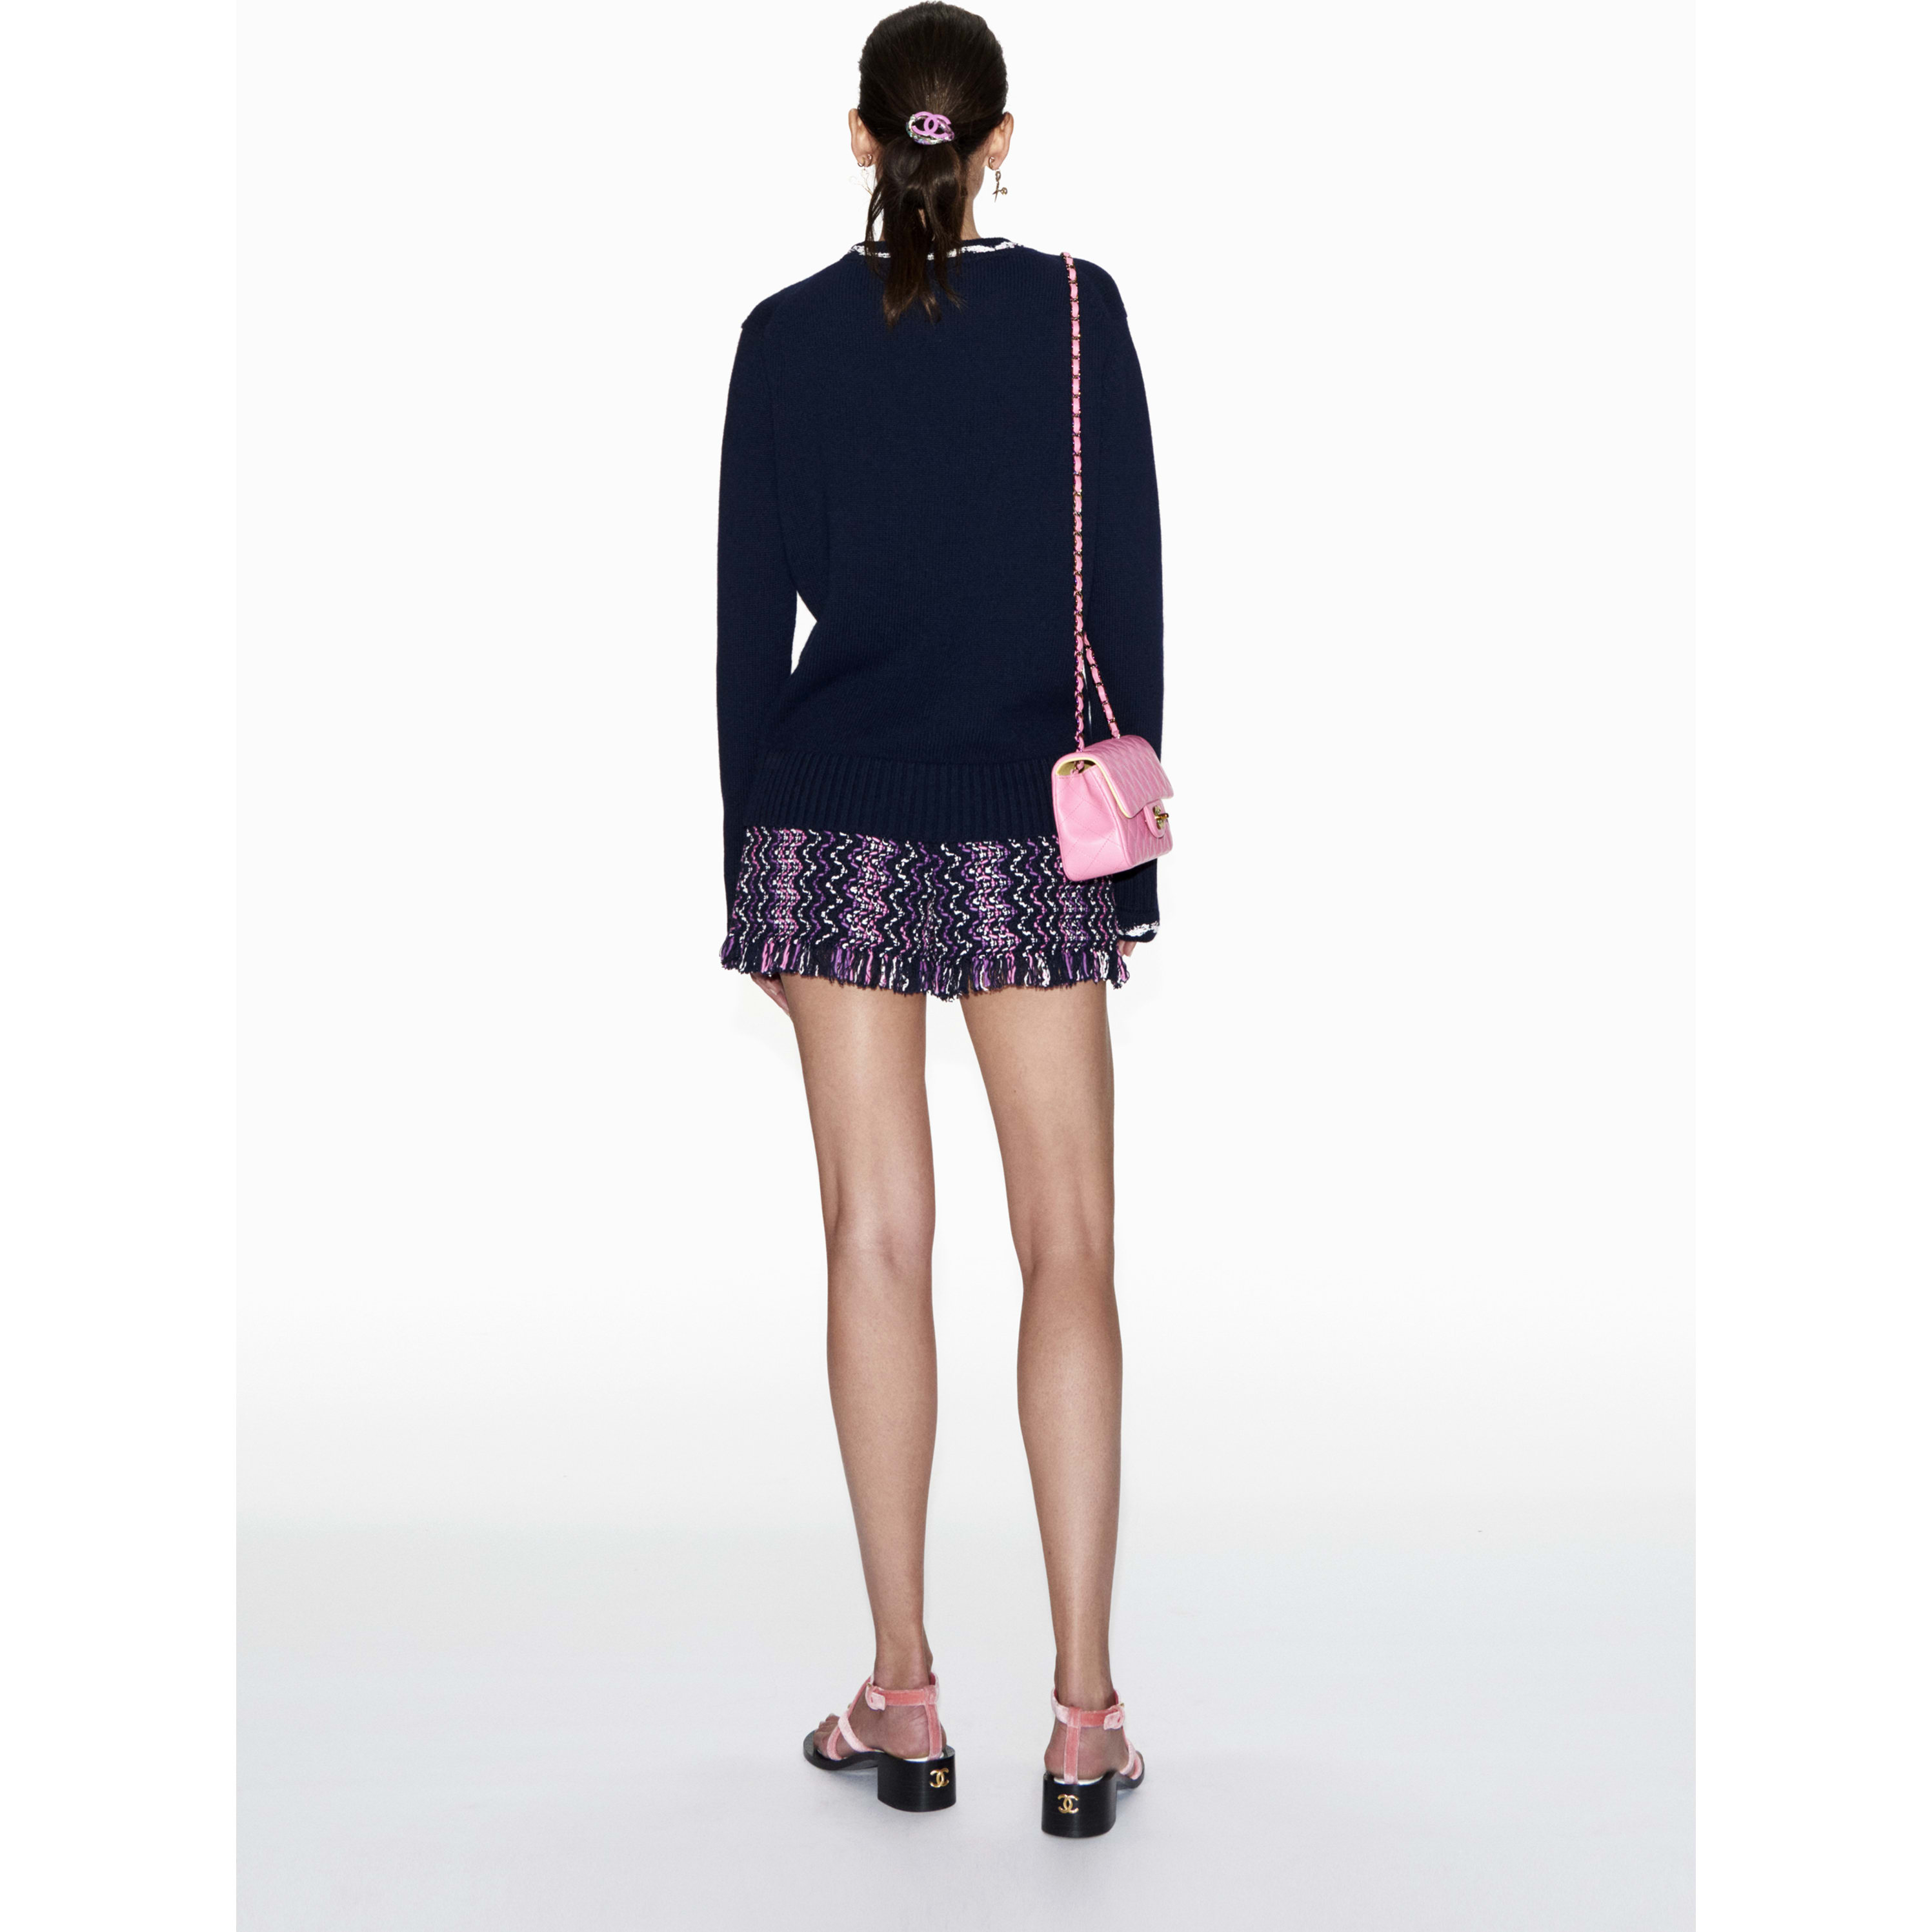 Shorts - Navy Blue, Purple & Pink - Cotton & Mixed Fibres - CHANEL - Alternative view - see standard sized version